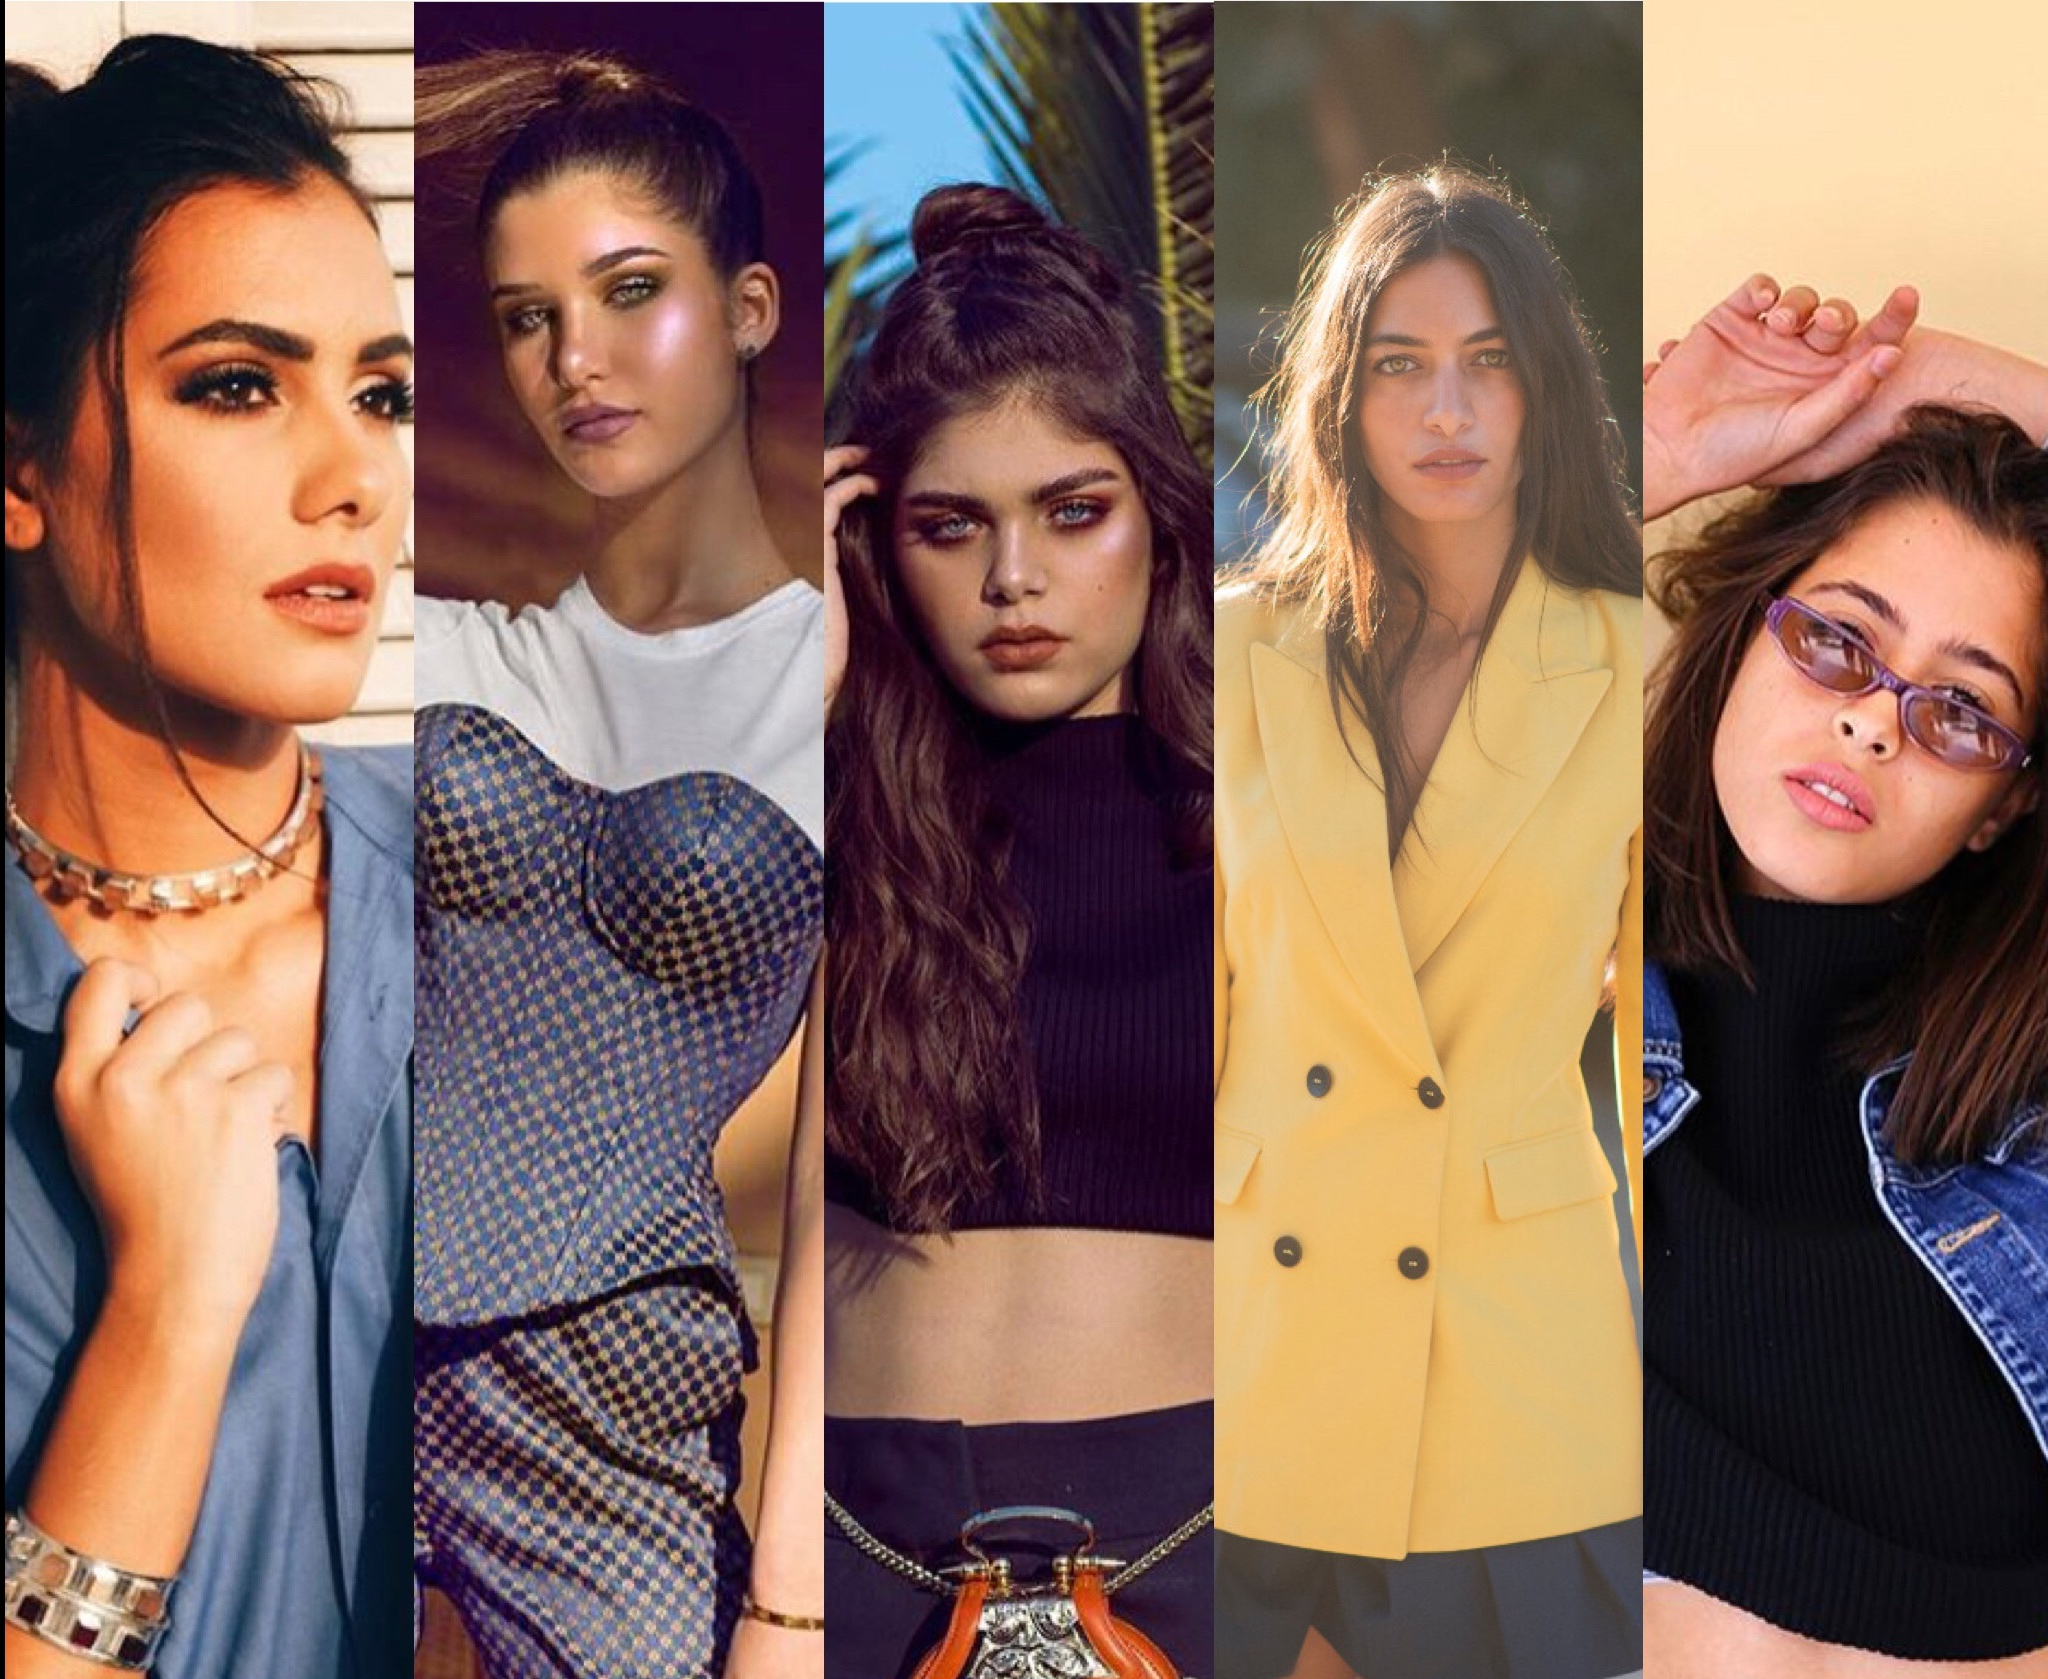 Egypt's Top Models Dish About Their Skincare, Hair Care and Wellness Secrets